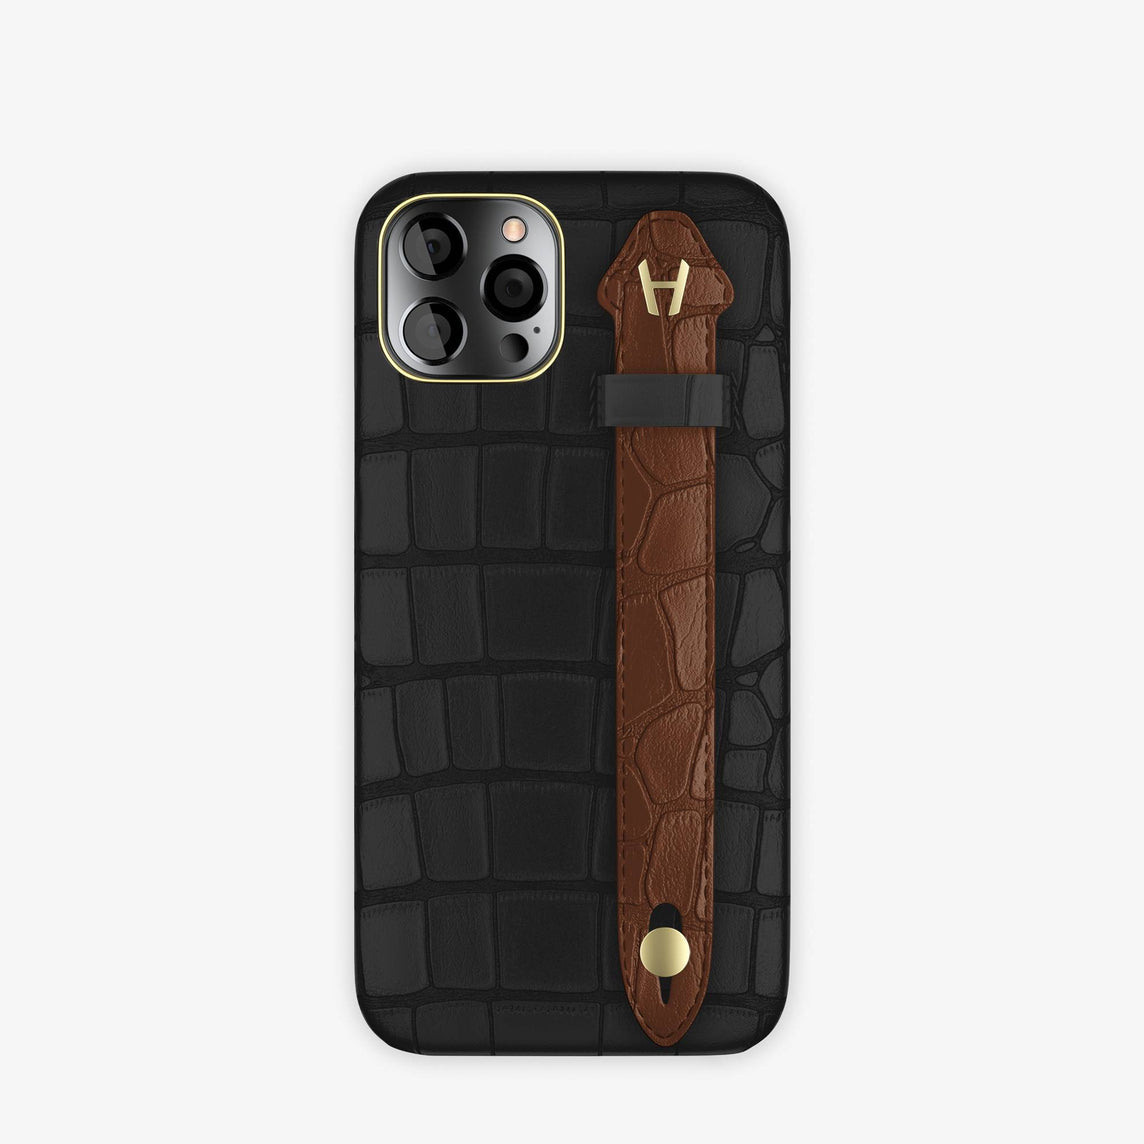 Alligator Side Finger Case iPhone 12 & iPhone 12 Pro | Black/Brown Chocolat -Yellow Gold